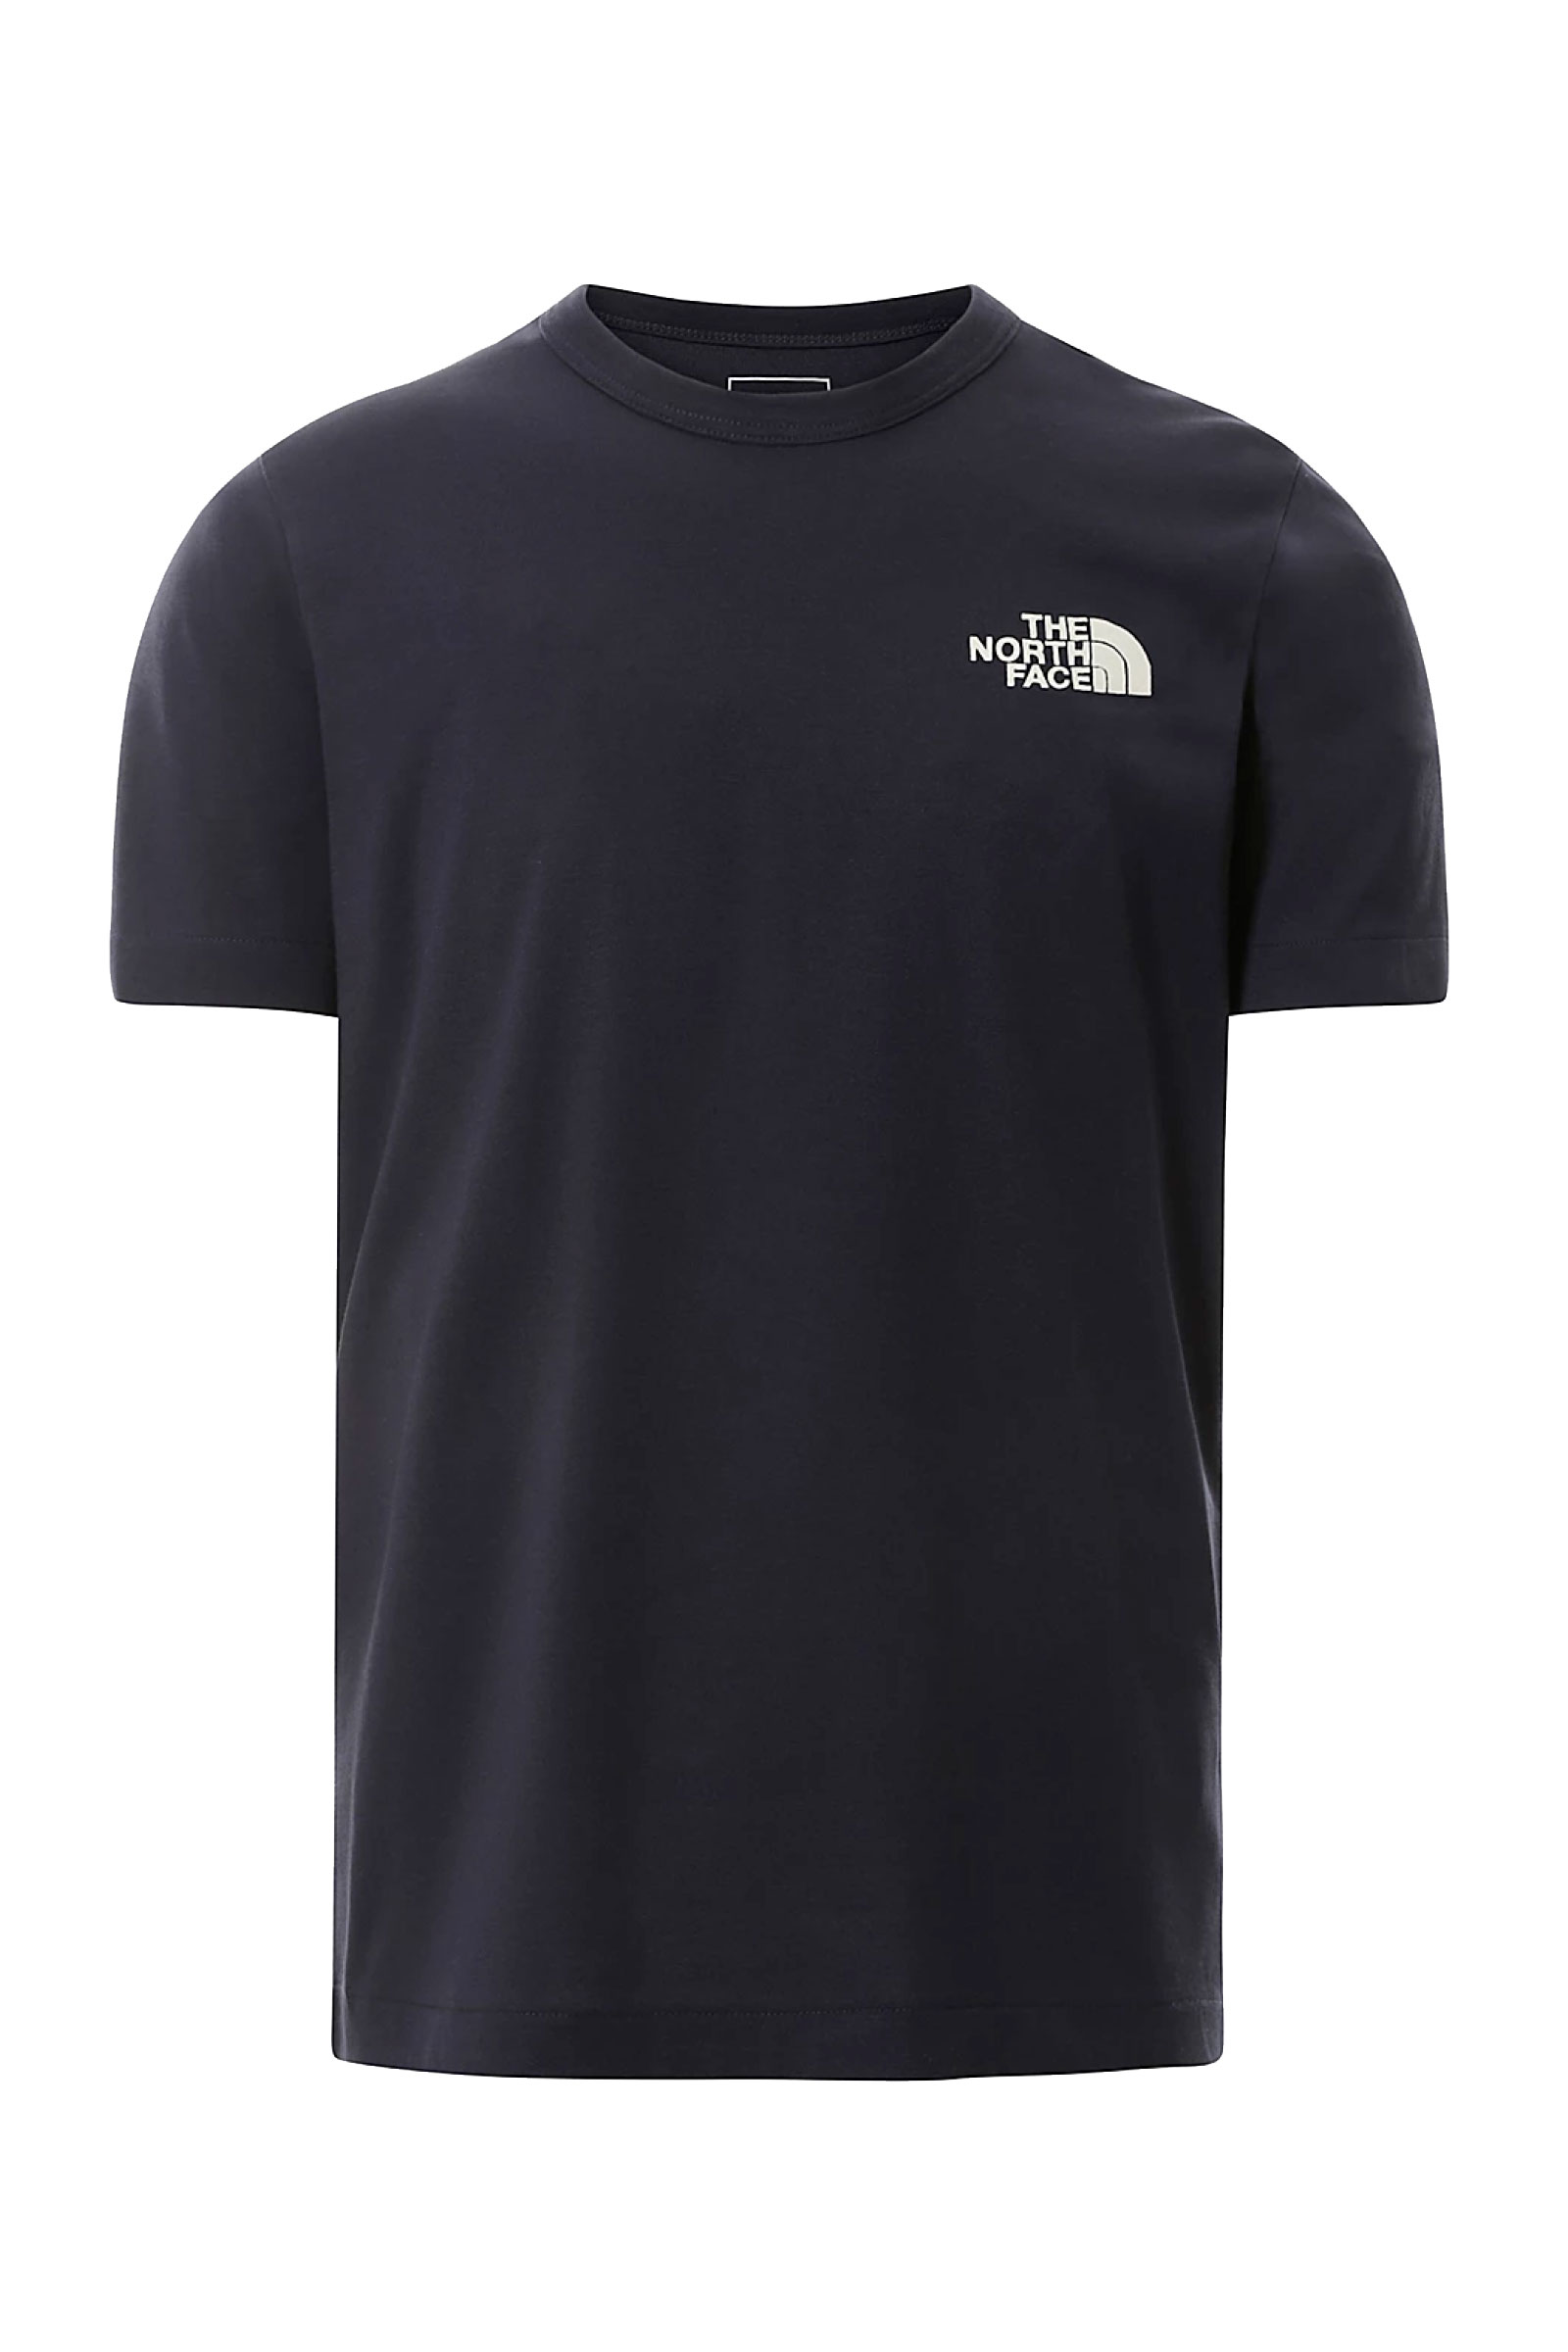 THE NORTH FACE T-Shirt Uomo THE NORTH FACE | T-Shirt | NF0A532LRG11